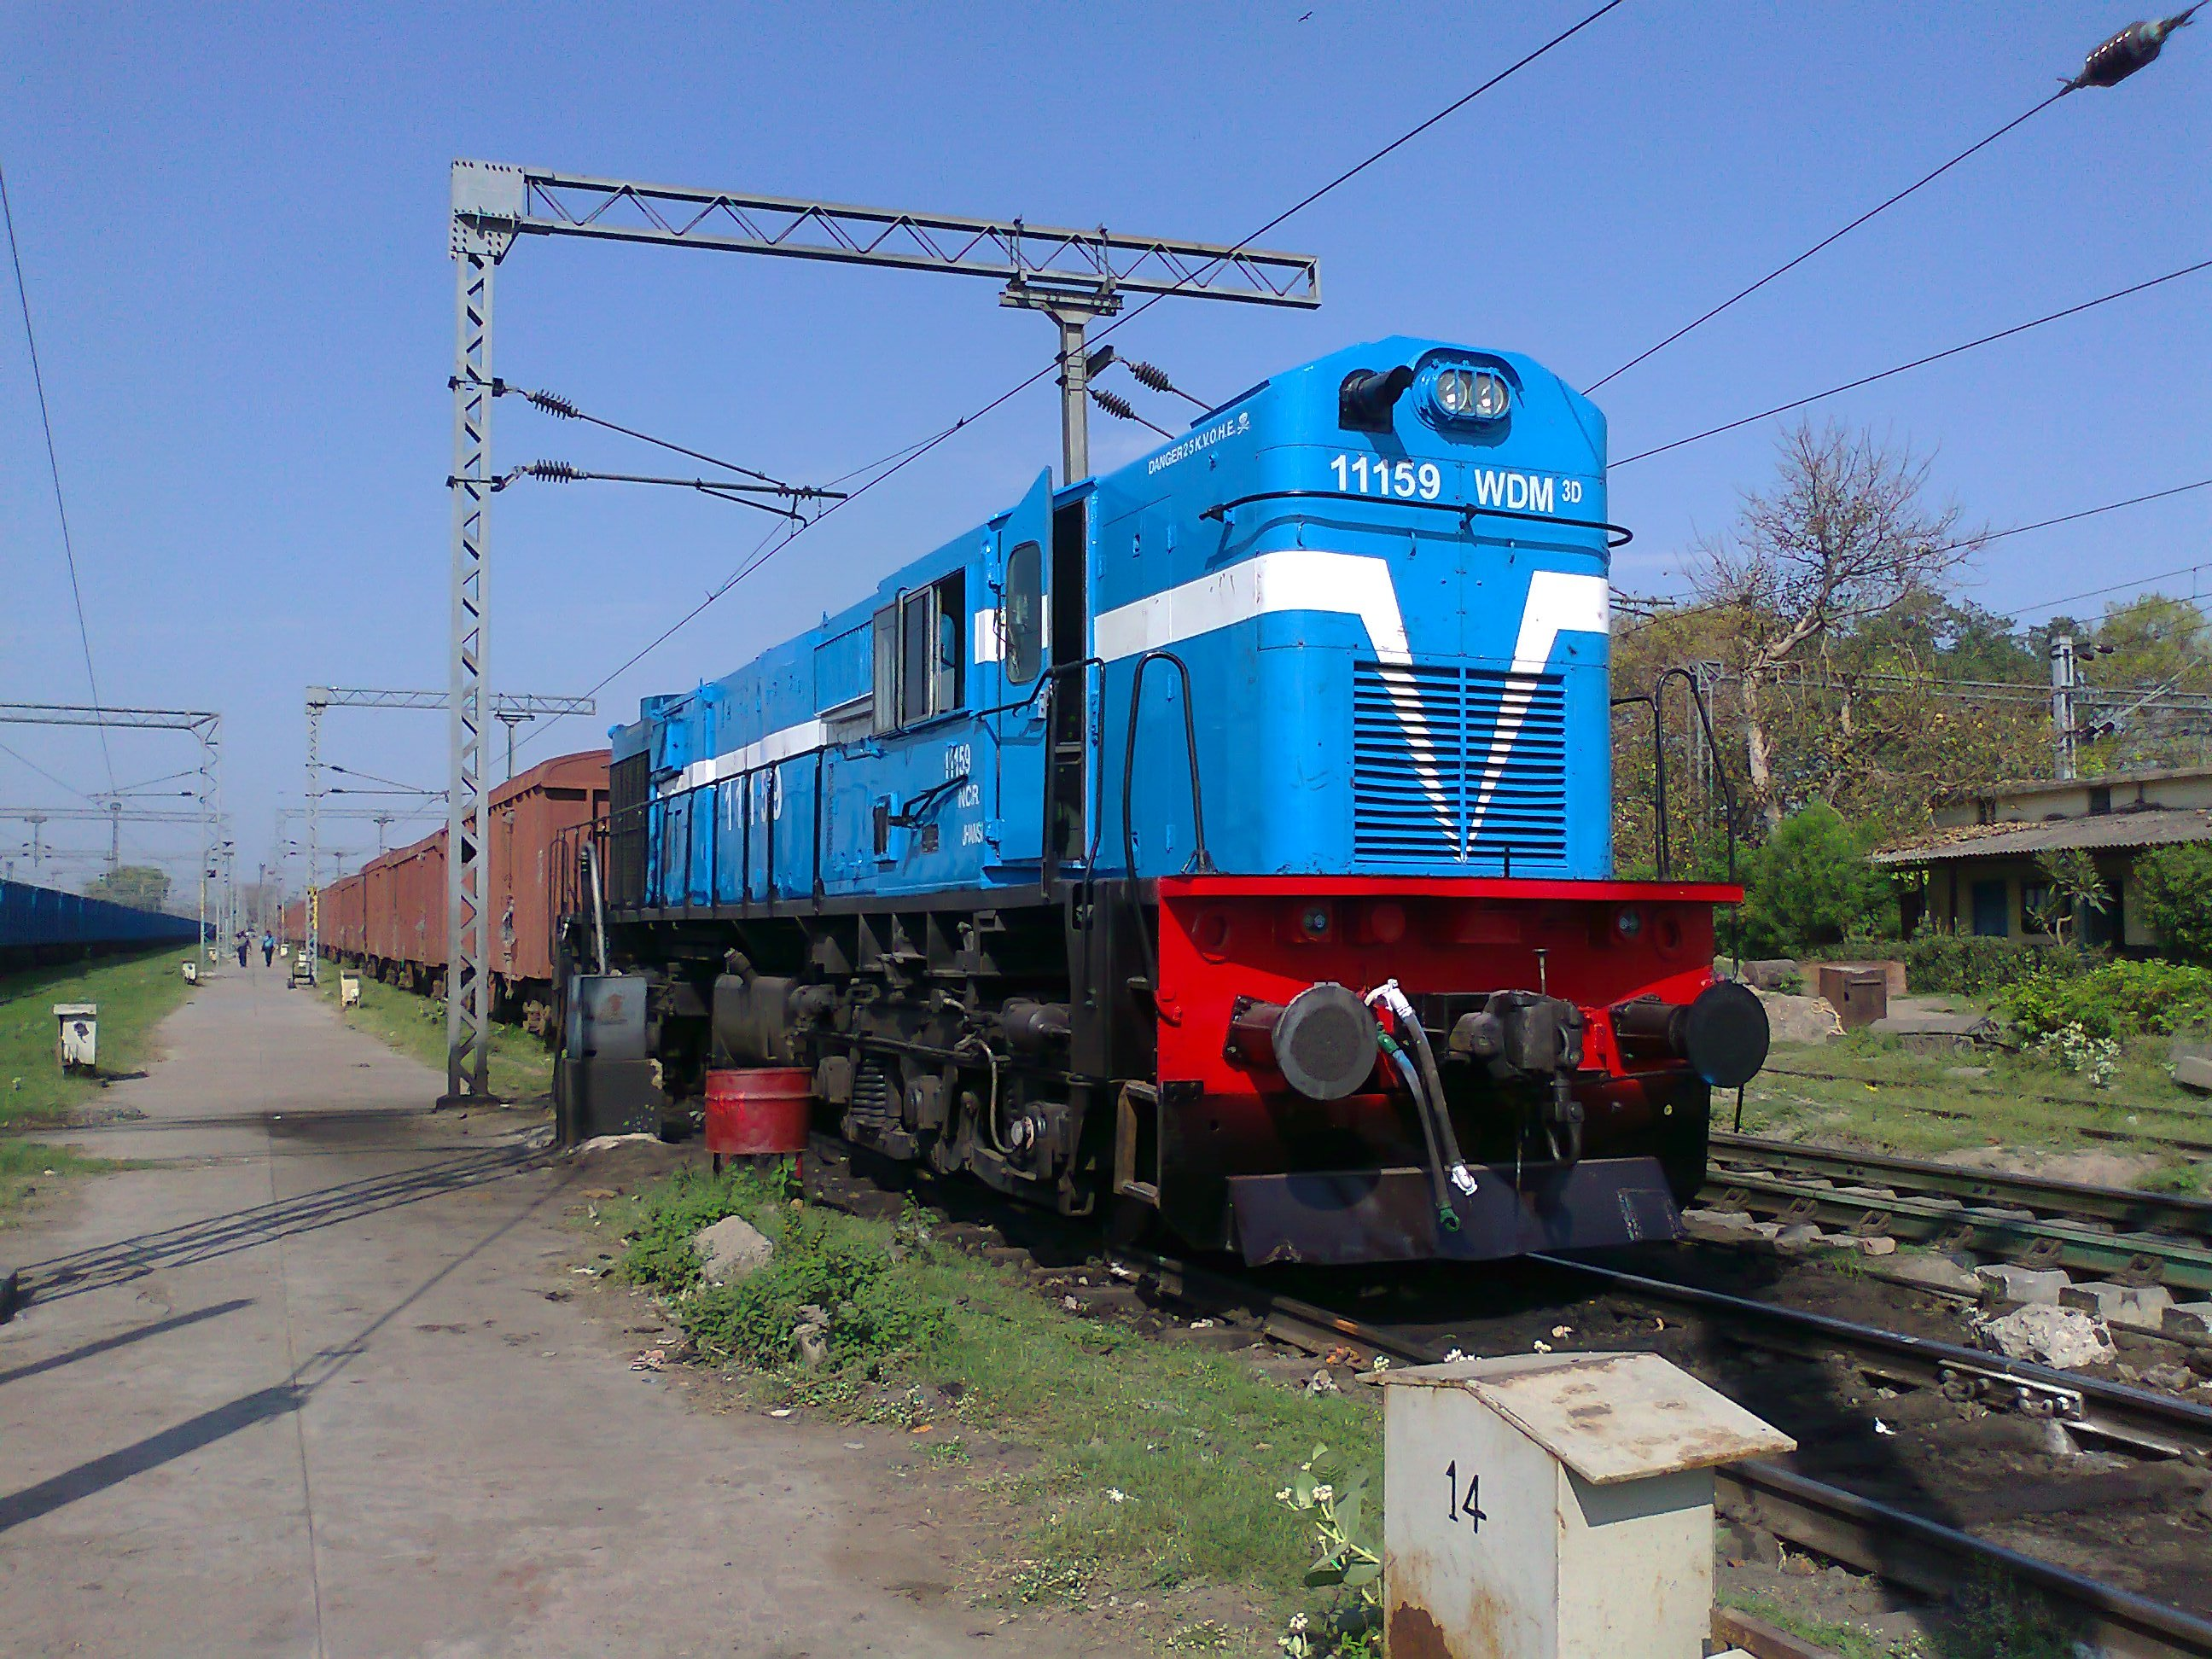 File:Freight train with WDM3D loco at Lucknow 01.jpg ...